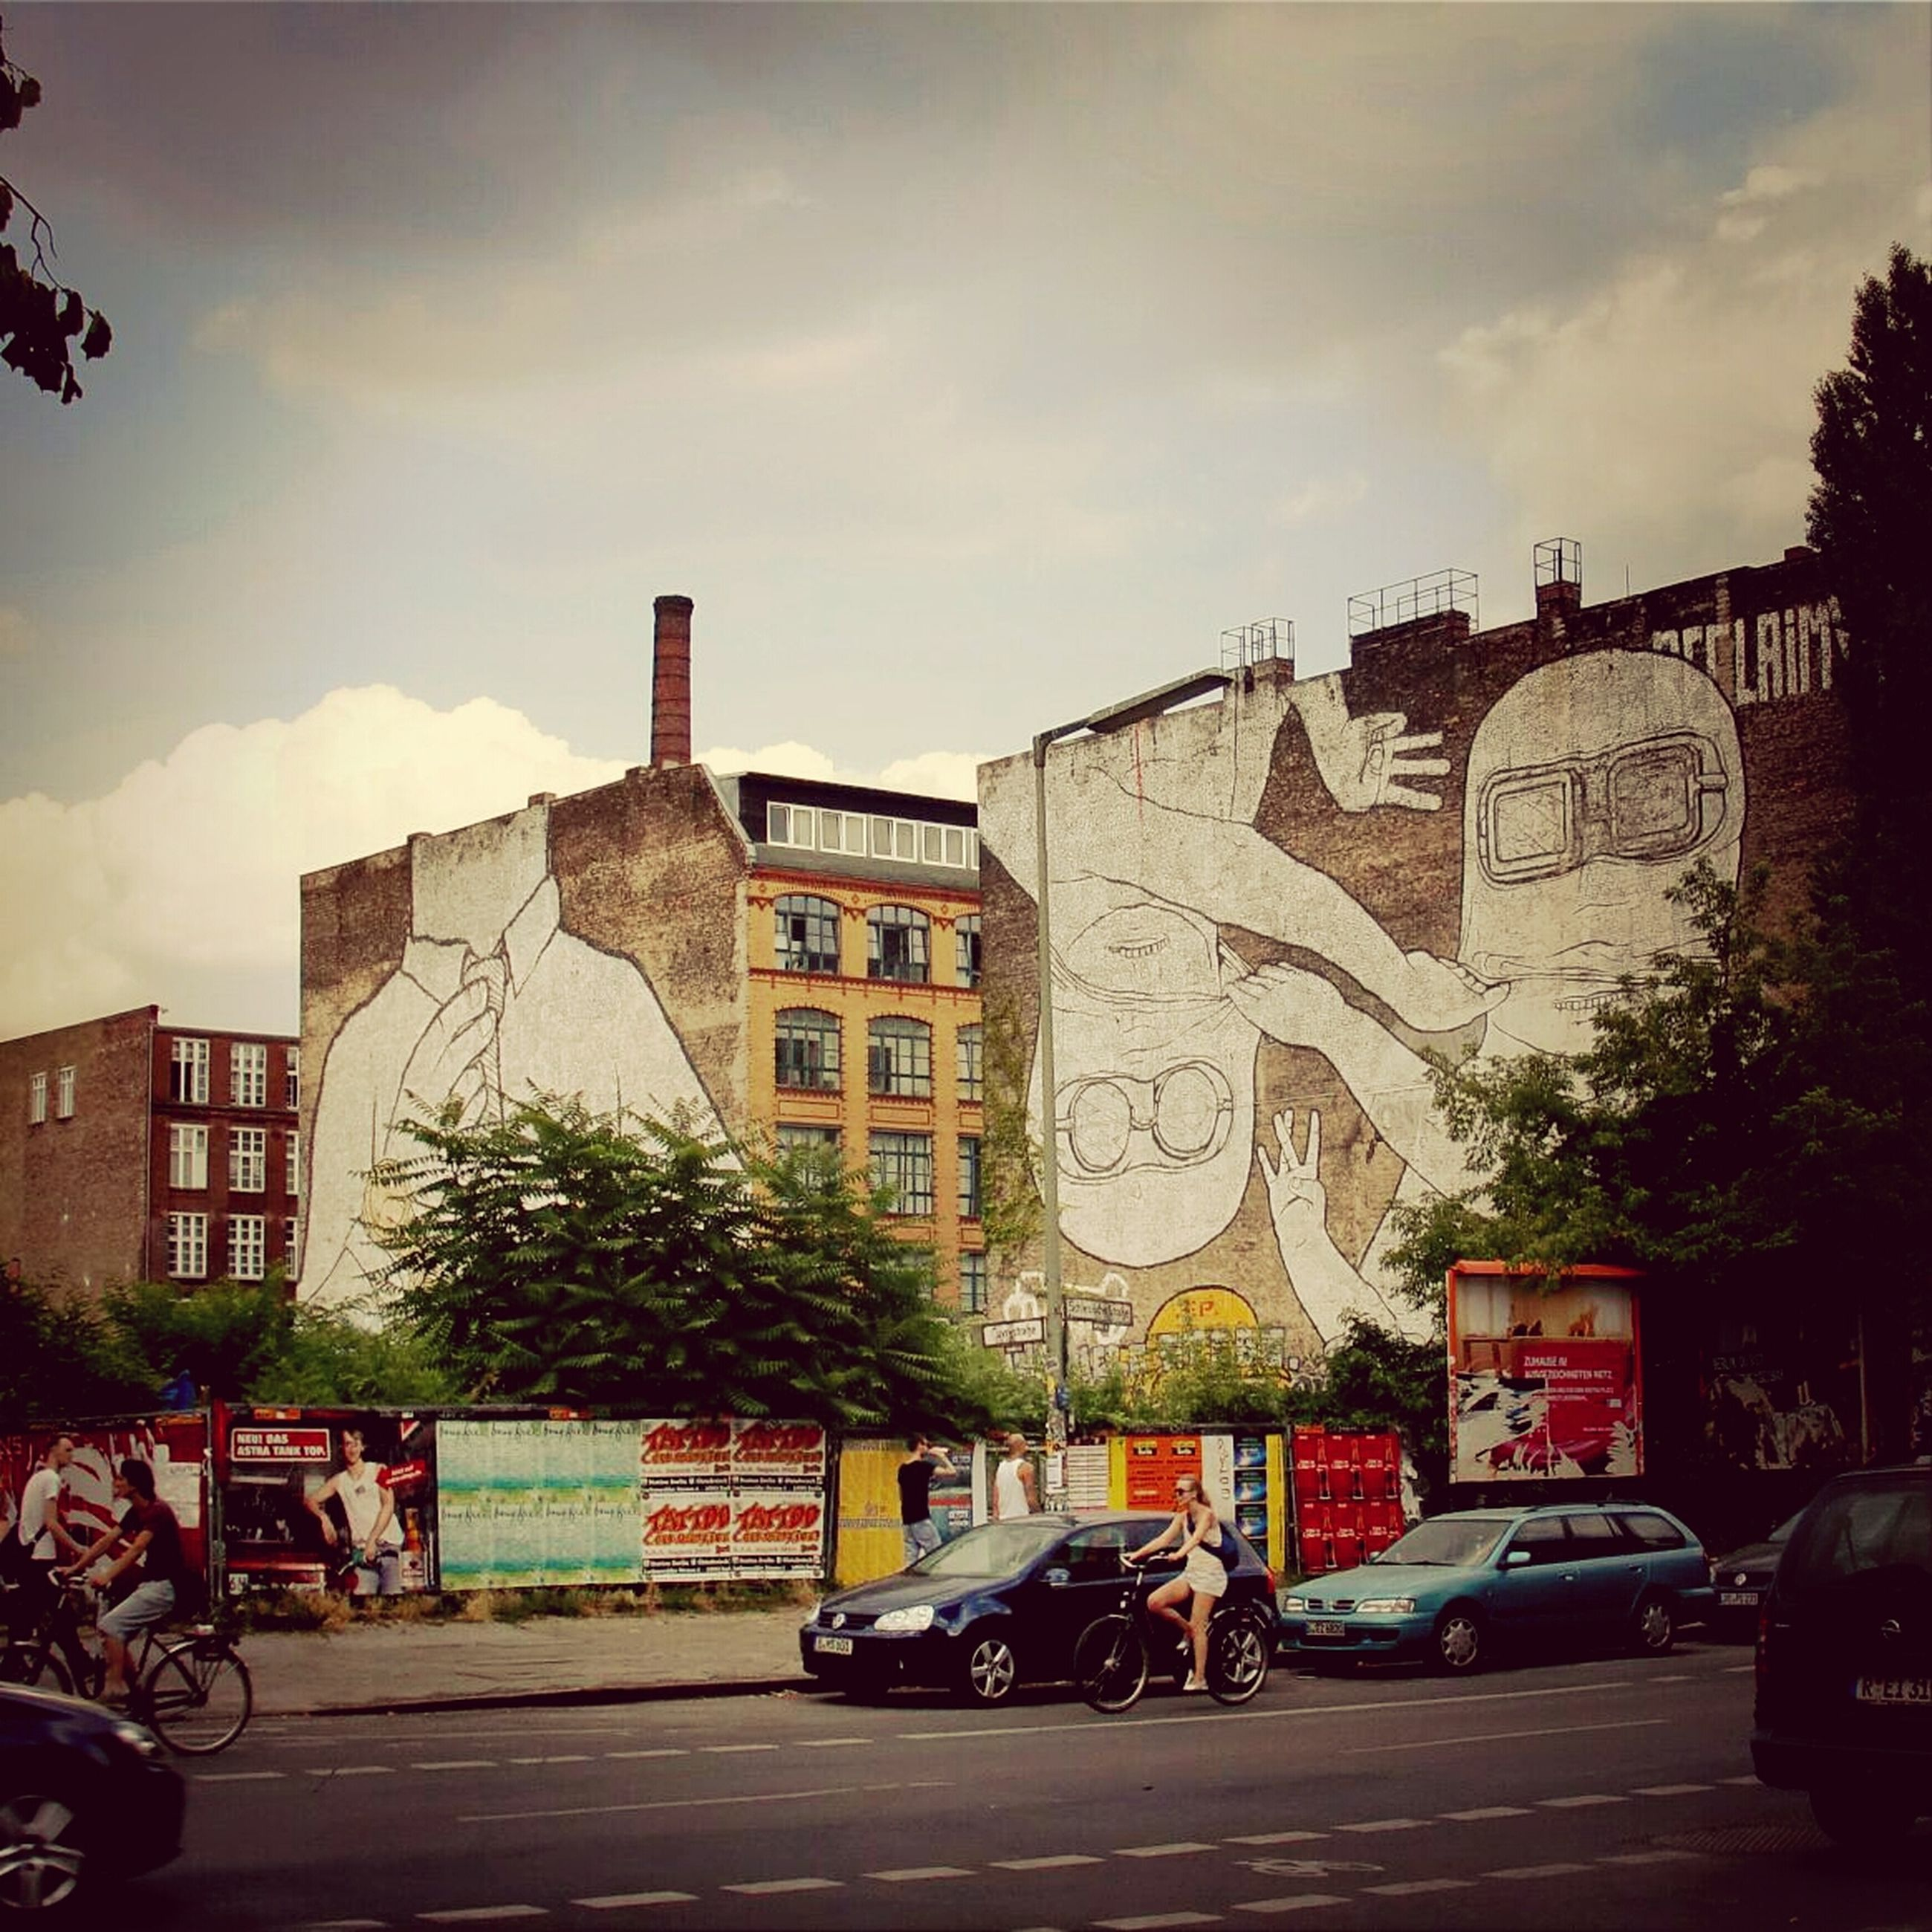 architecture, building exterior, built structure, sky, text, street, tree, cloud - sky, city, graffiti, outdoors, day, road, western script, incidental people, cloud, art, transportation, art and craft, communication